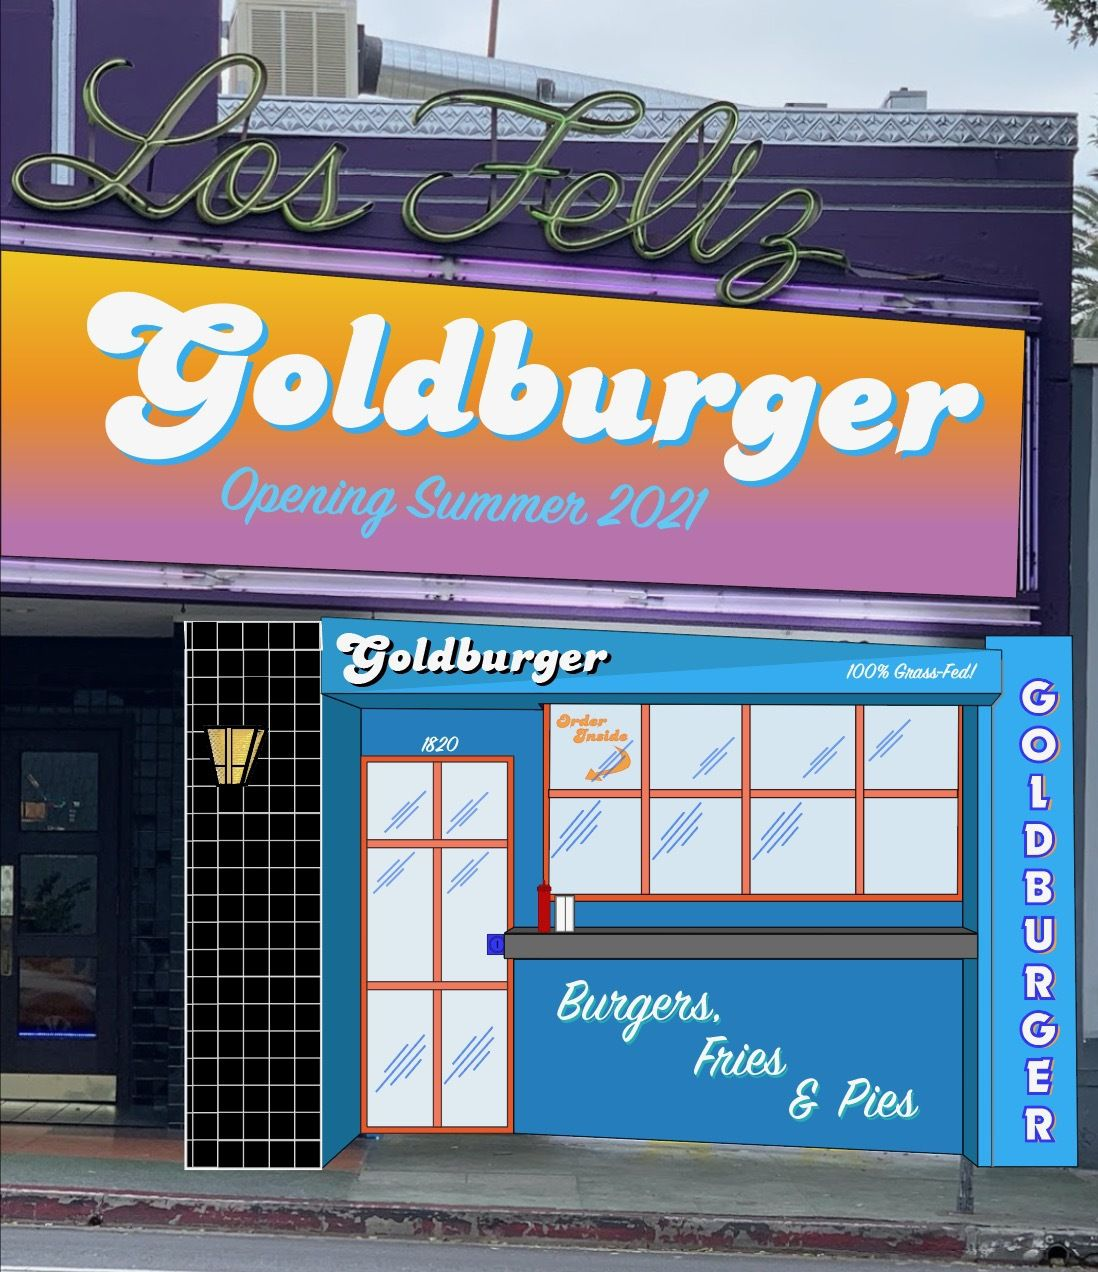 A colorful rendering of a burger shop next to a movie theater.